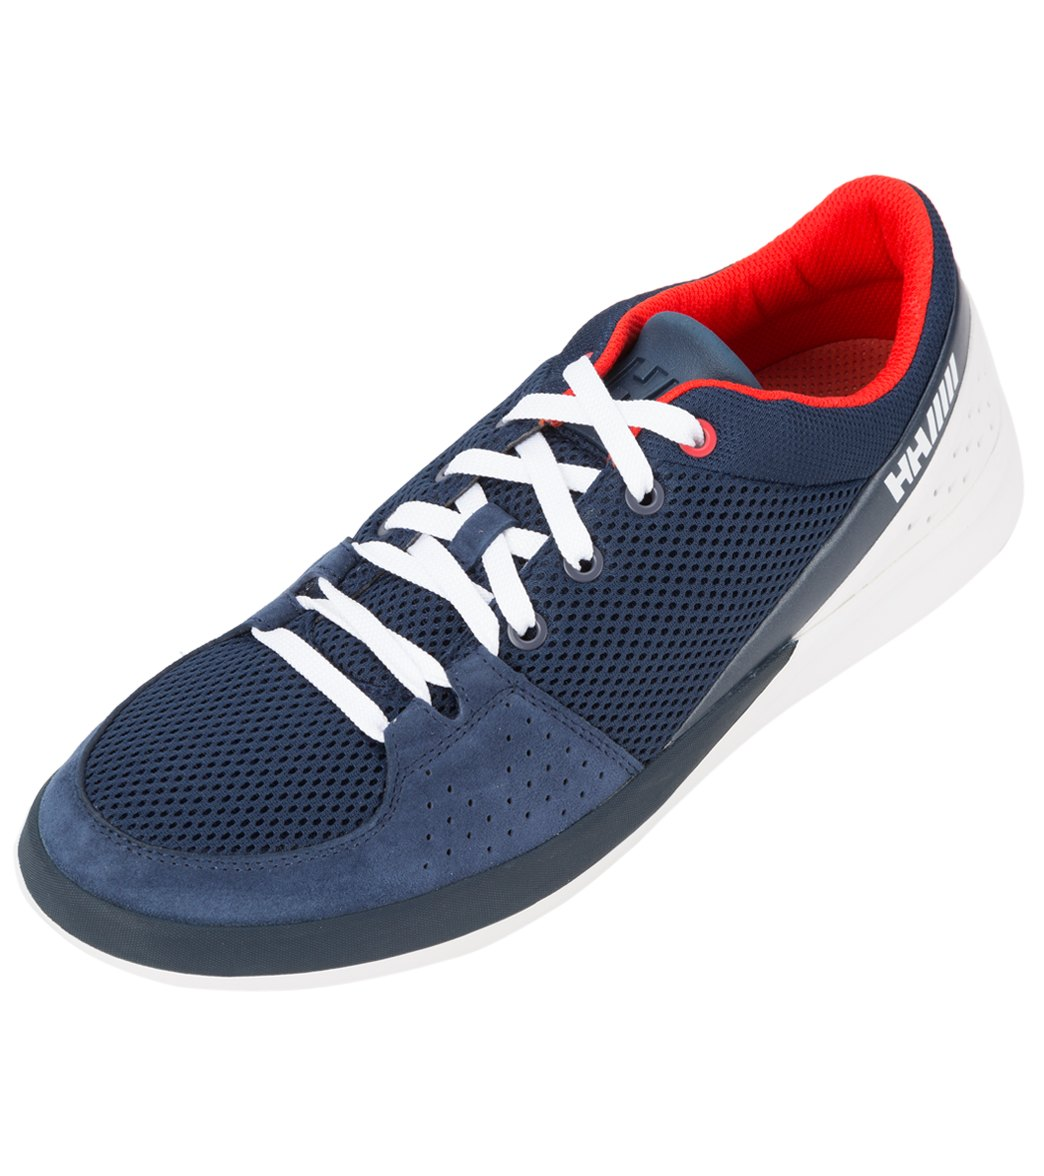 f897041eaa7d Helly Hansen Men s 5.5 M WI WO Water Shoes at SwimOutlet.com - Free Shipping